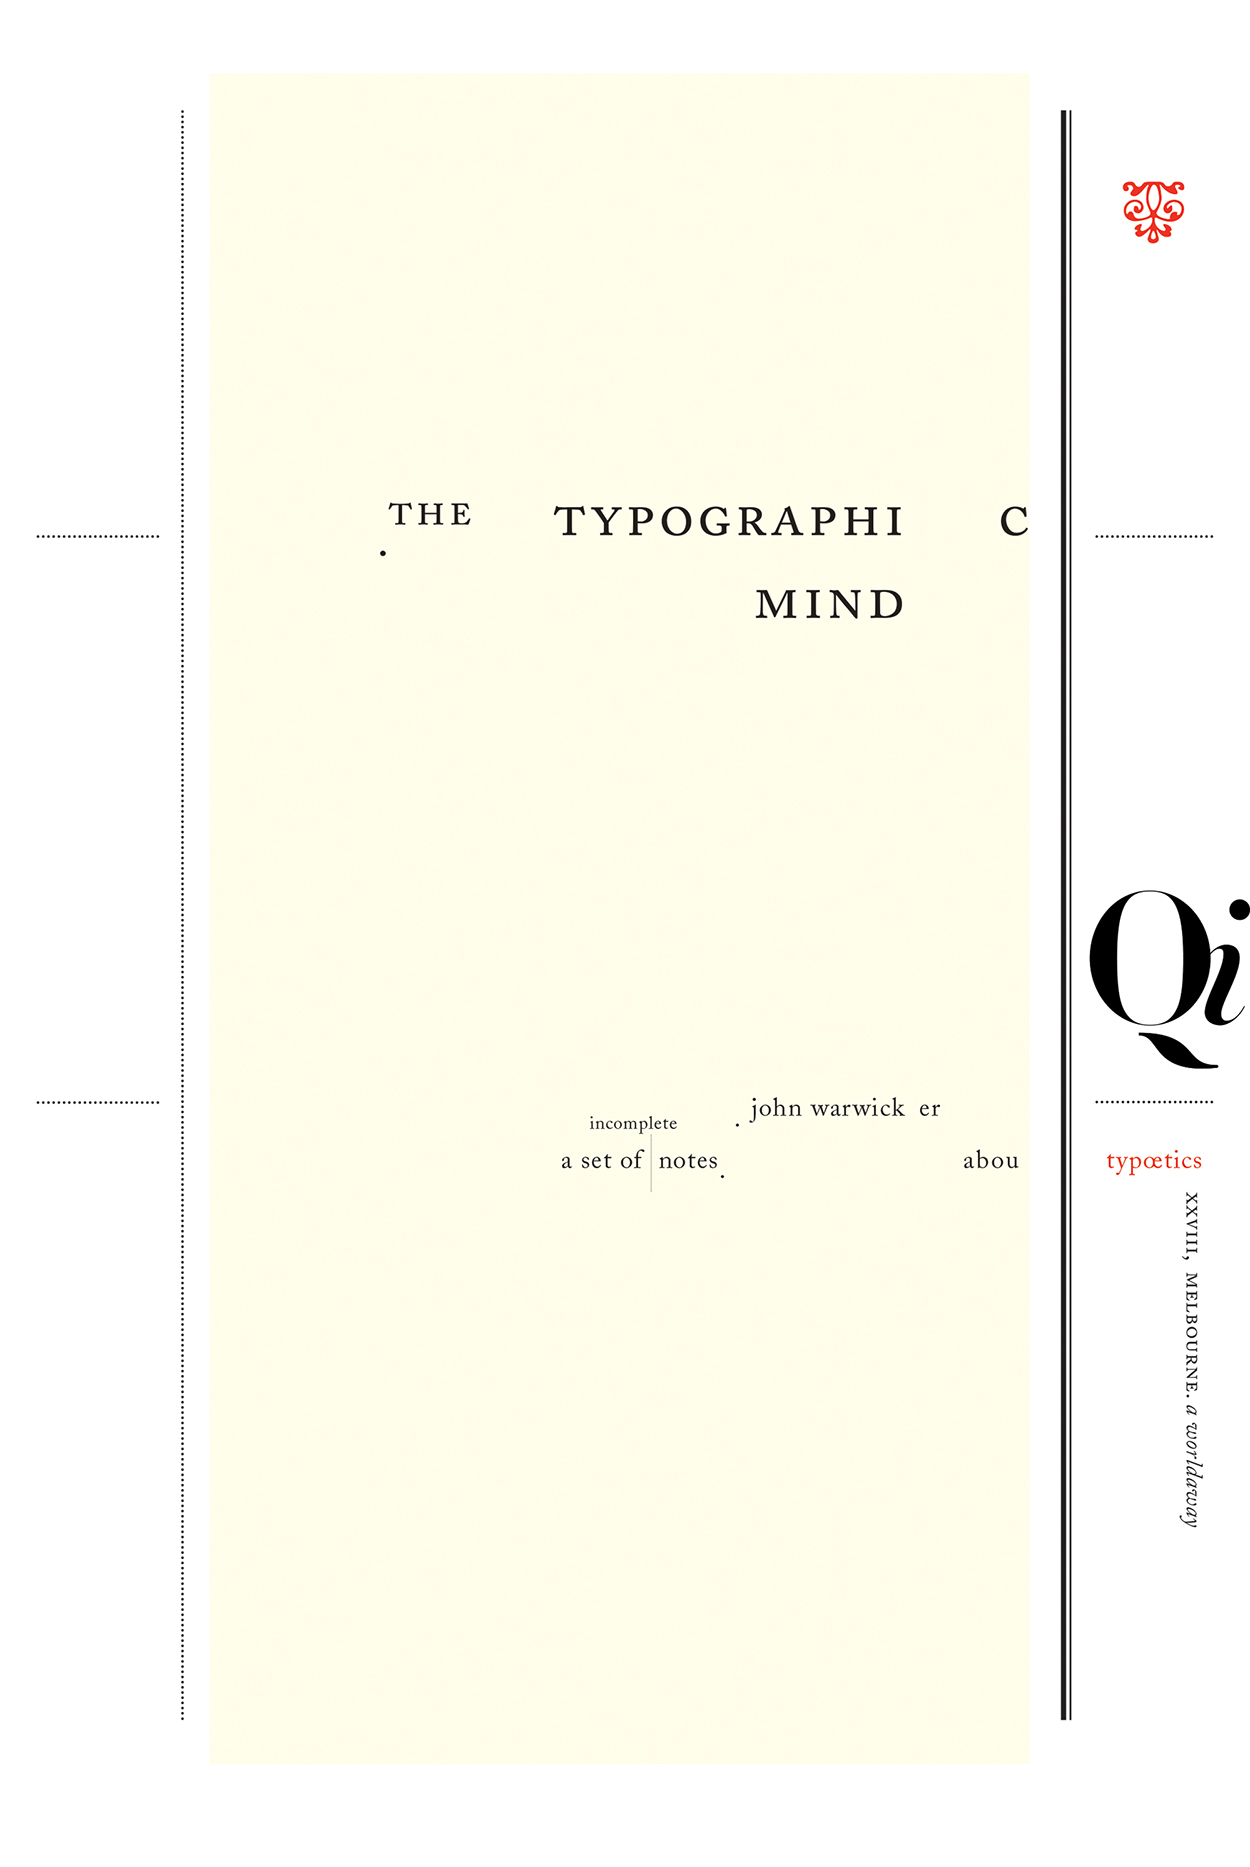 the typographic mind